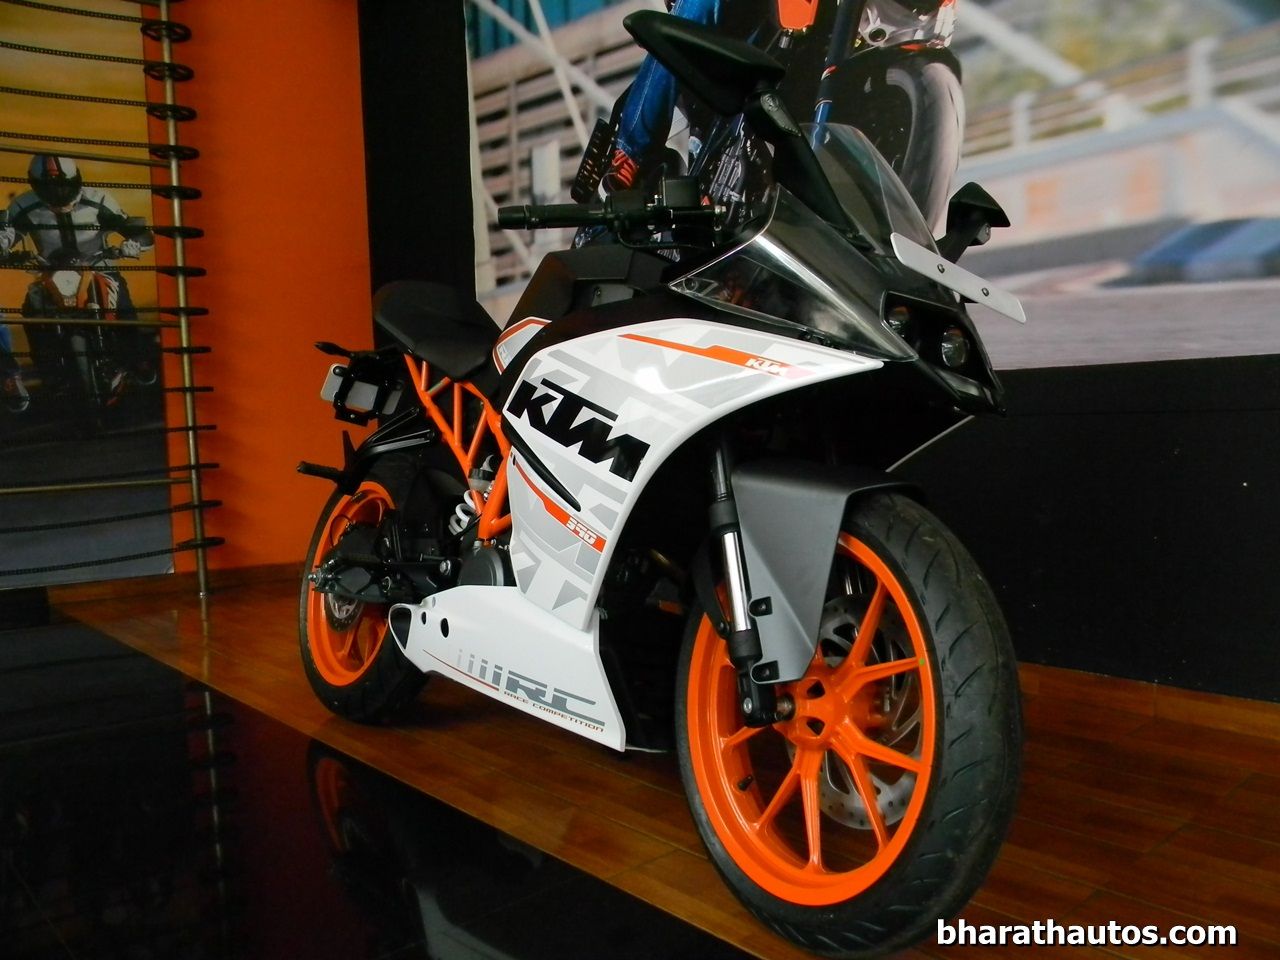 ktm rc 390 - detailed review and picture gallery